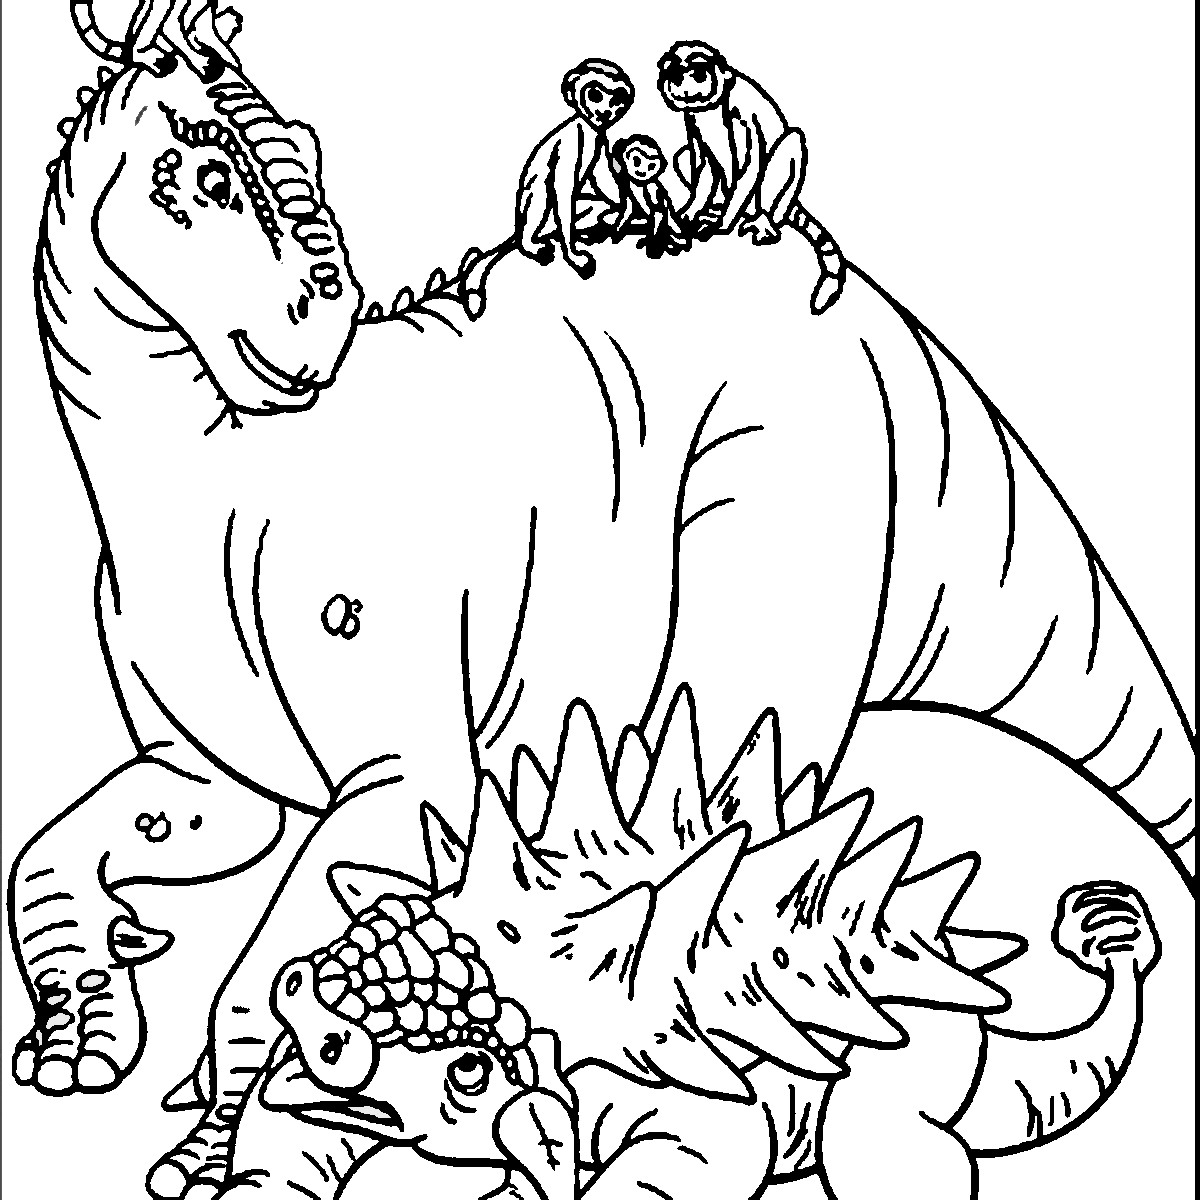 jurassic world printable coloring pages free jurassic world coloring pages download and print coloring printable world jurassic pages